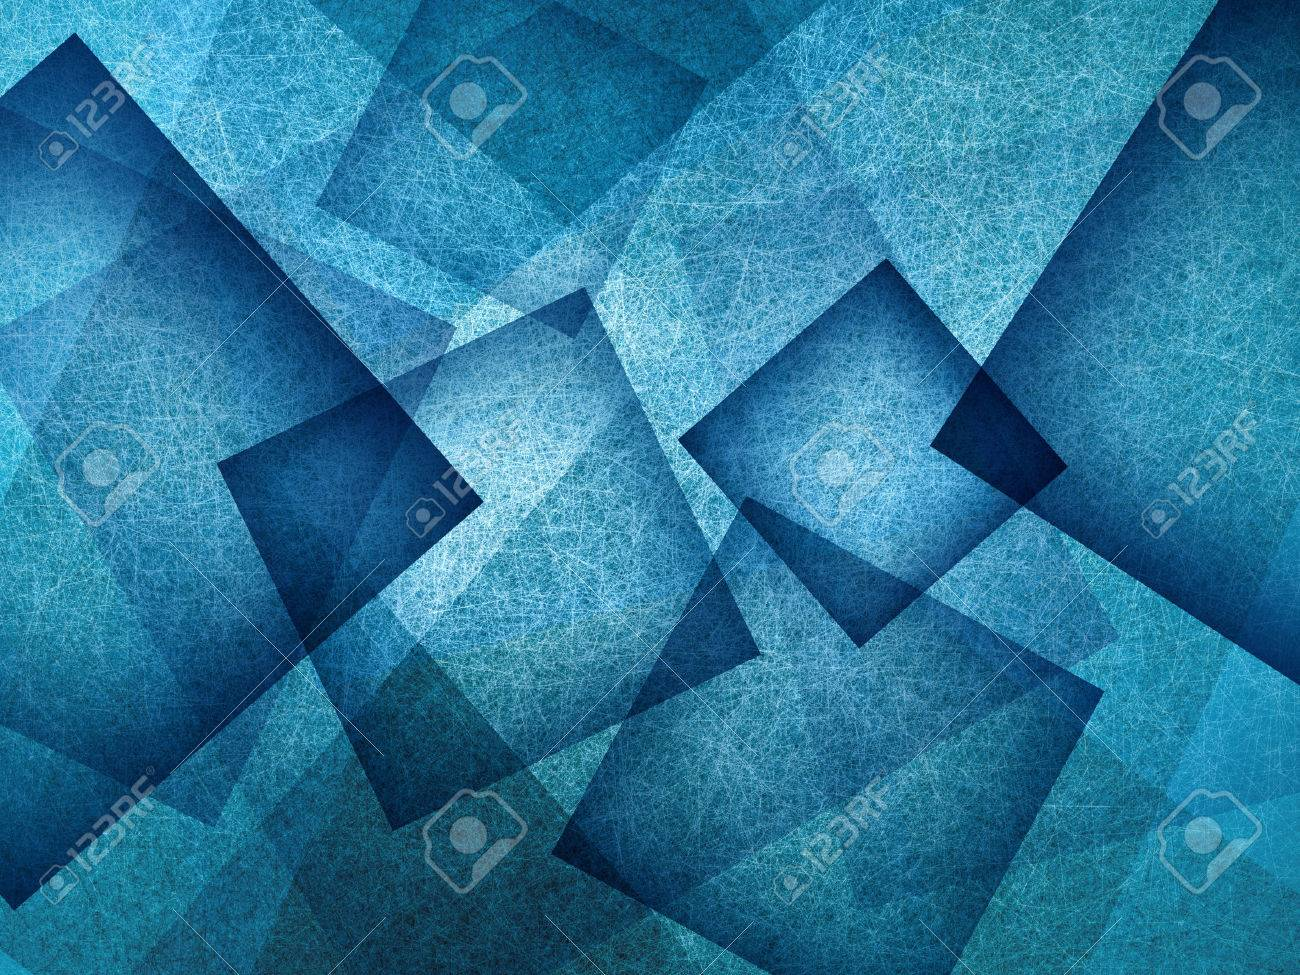 blue background with rectangle and diamond shapes in transparent layers floating in the sky, cool artsy background design - 62048177